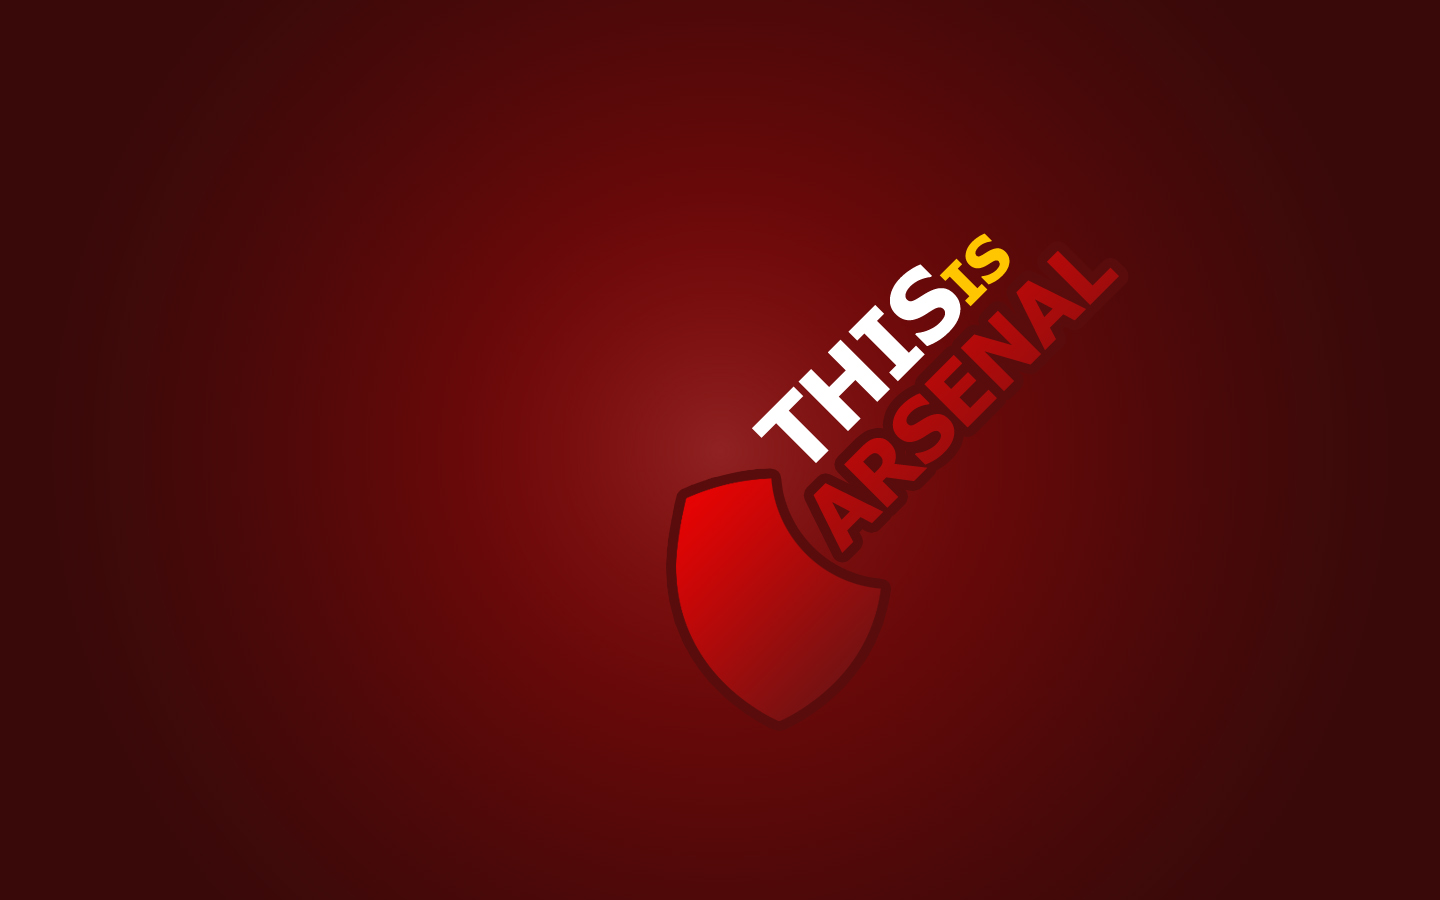 Arsenal HD Wallpapers for Desktop iPhone iPad and Android 1440x900